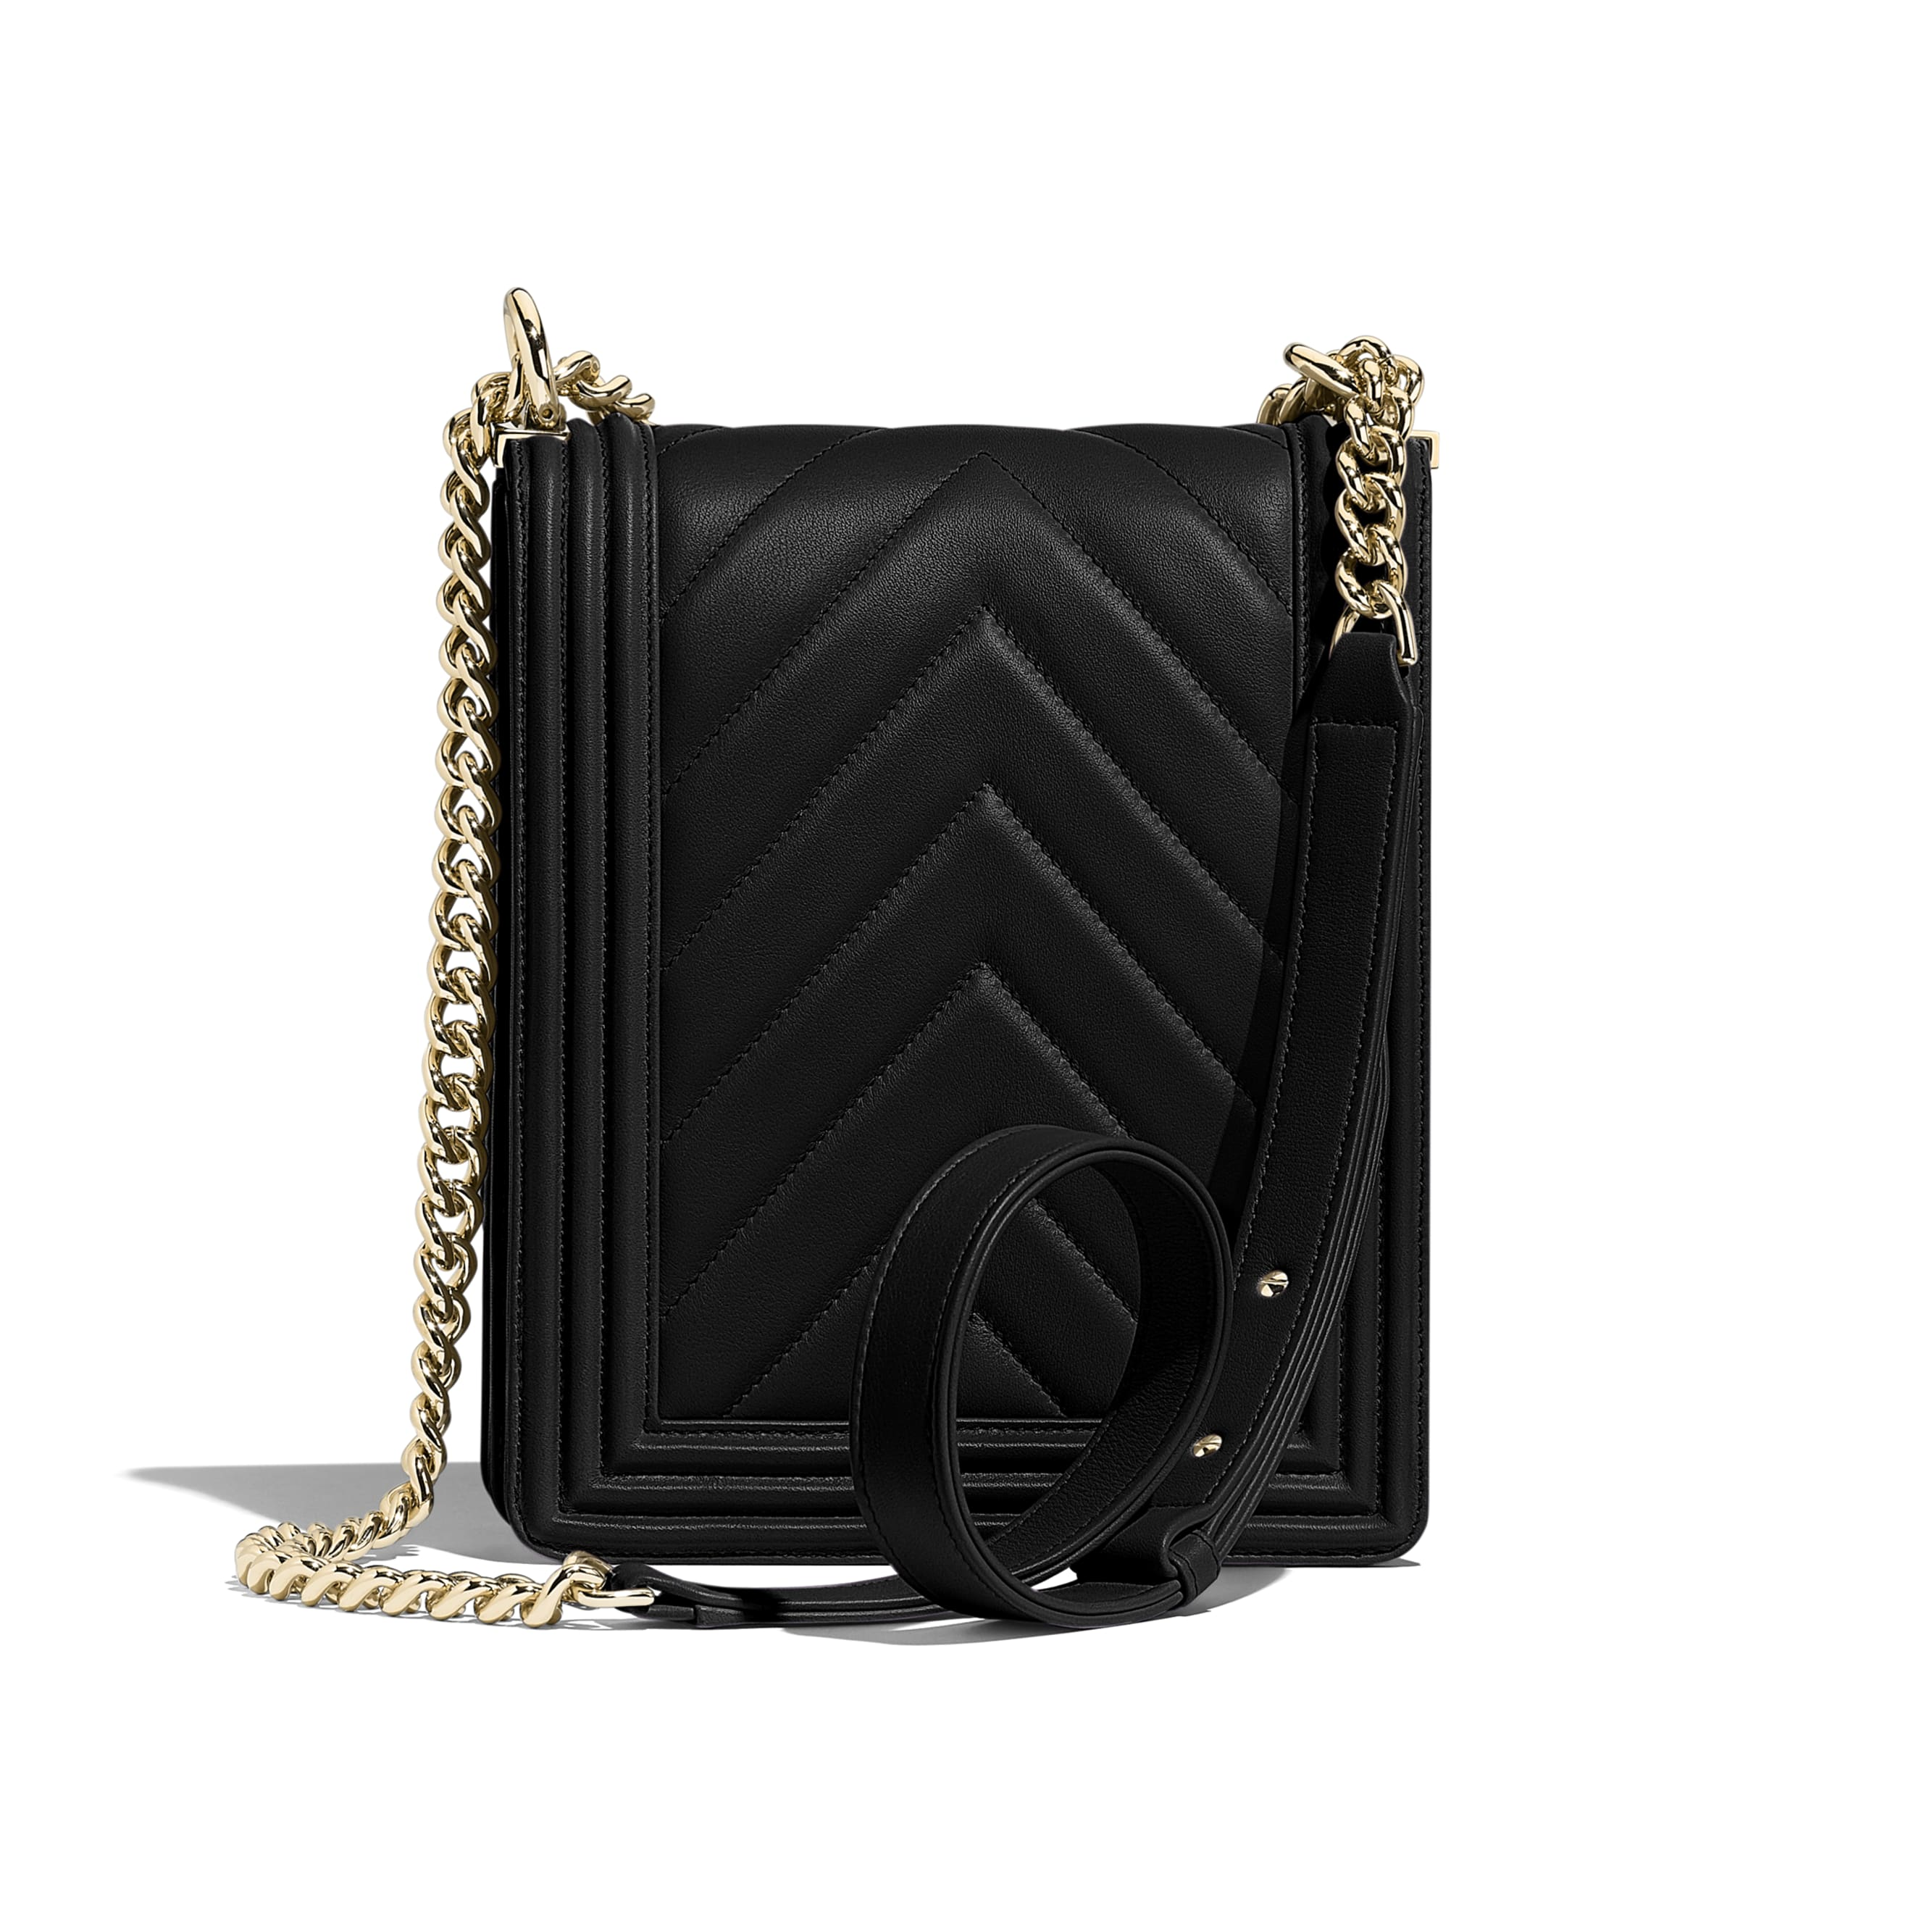 BOY CHANEL Handbag - Black - Calfskin & Gold-Tone Metal - Alternative view - see standard sized version